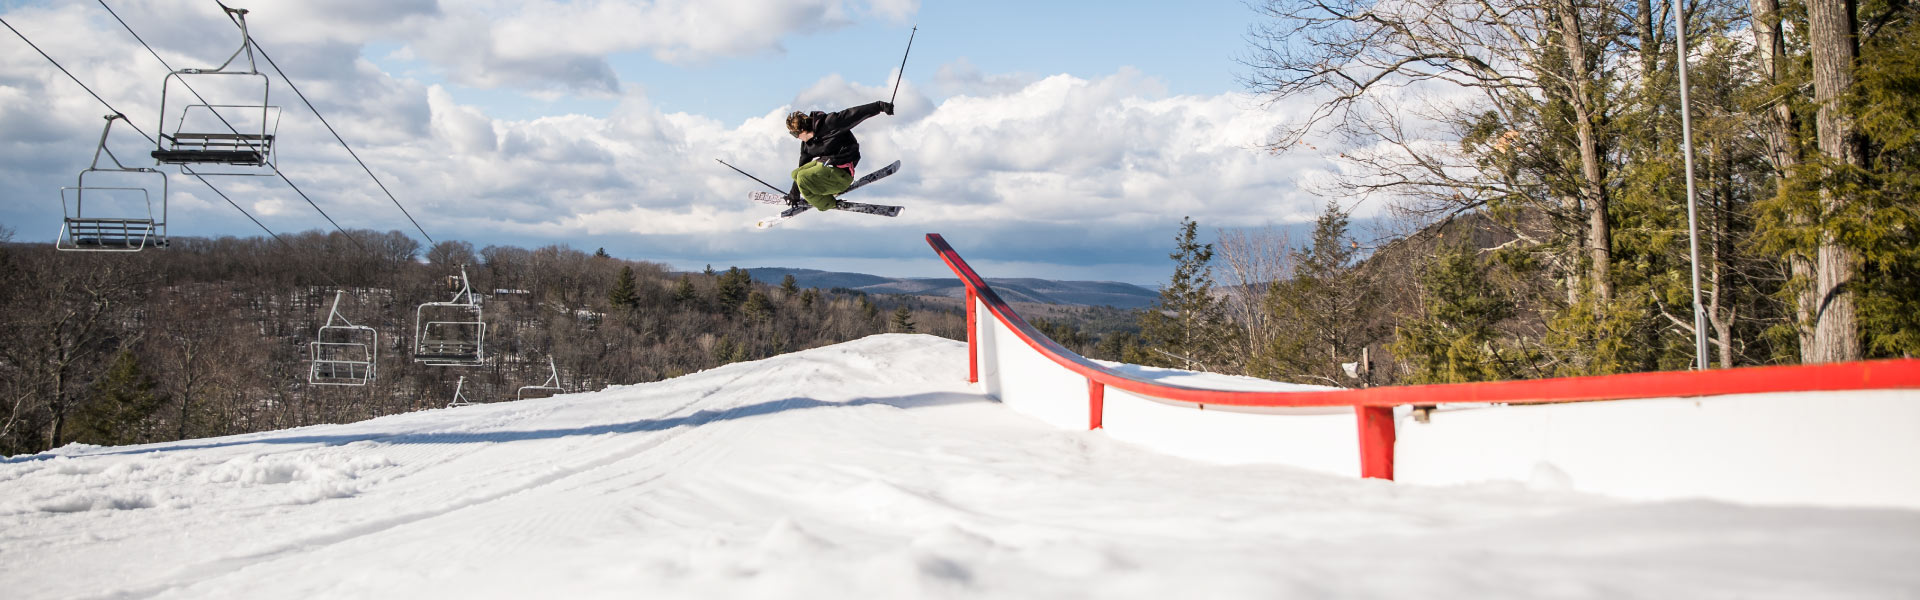 Skier jumping off terrain park feature